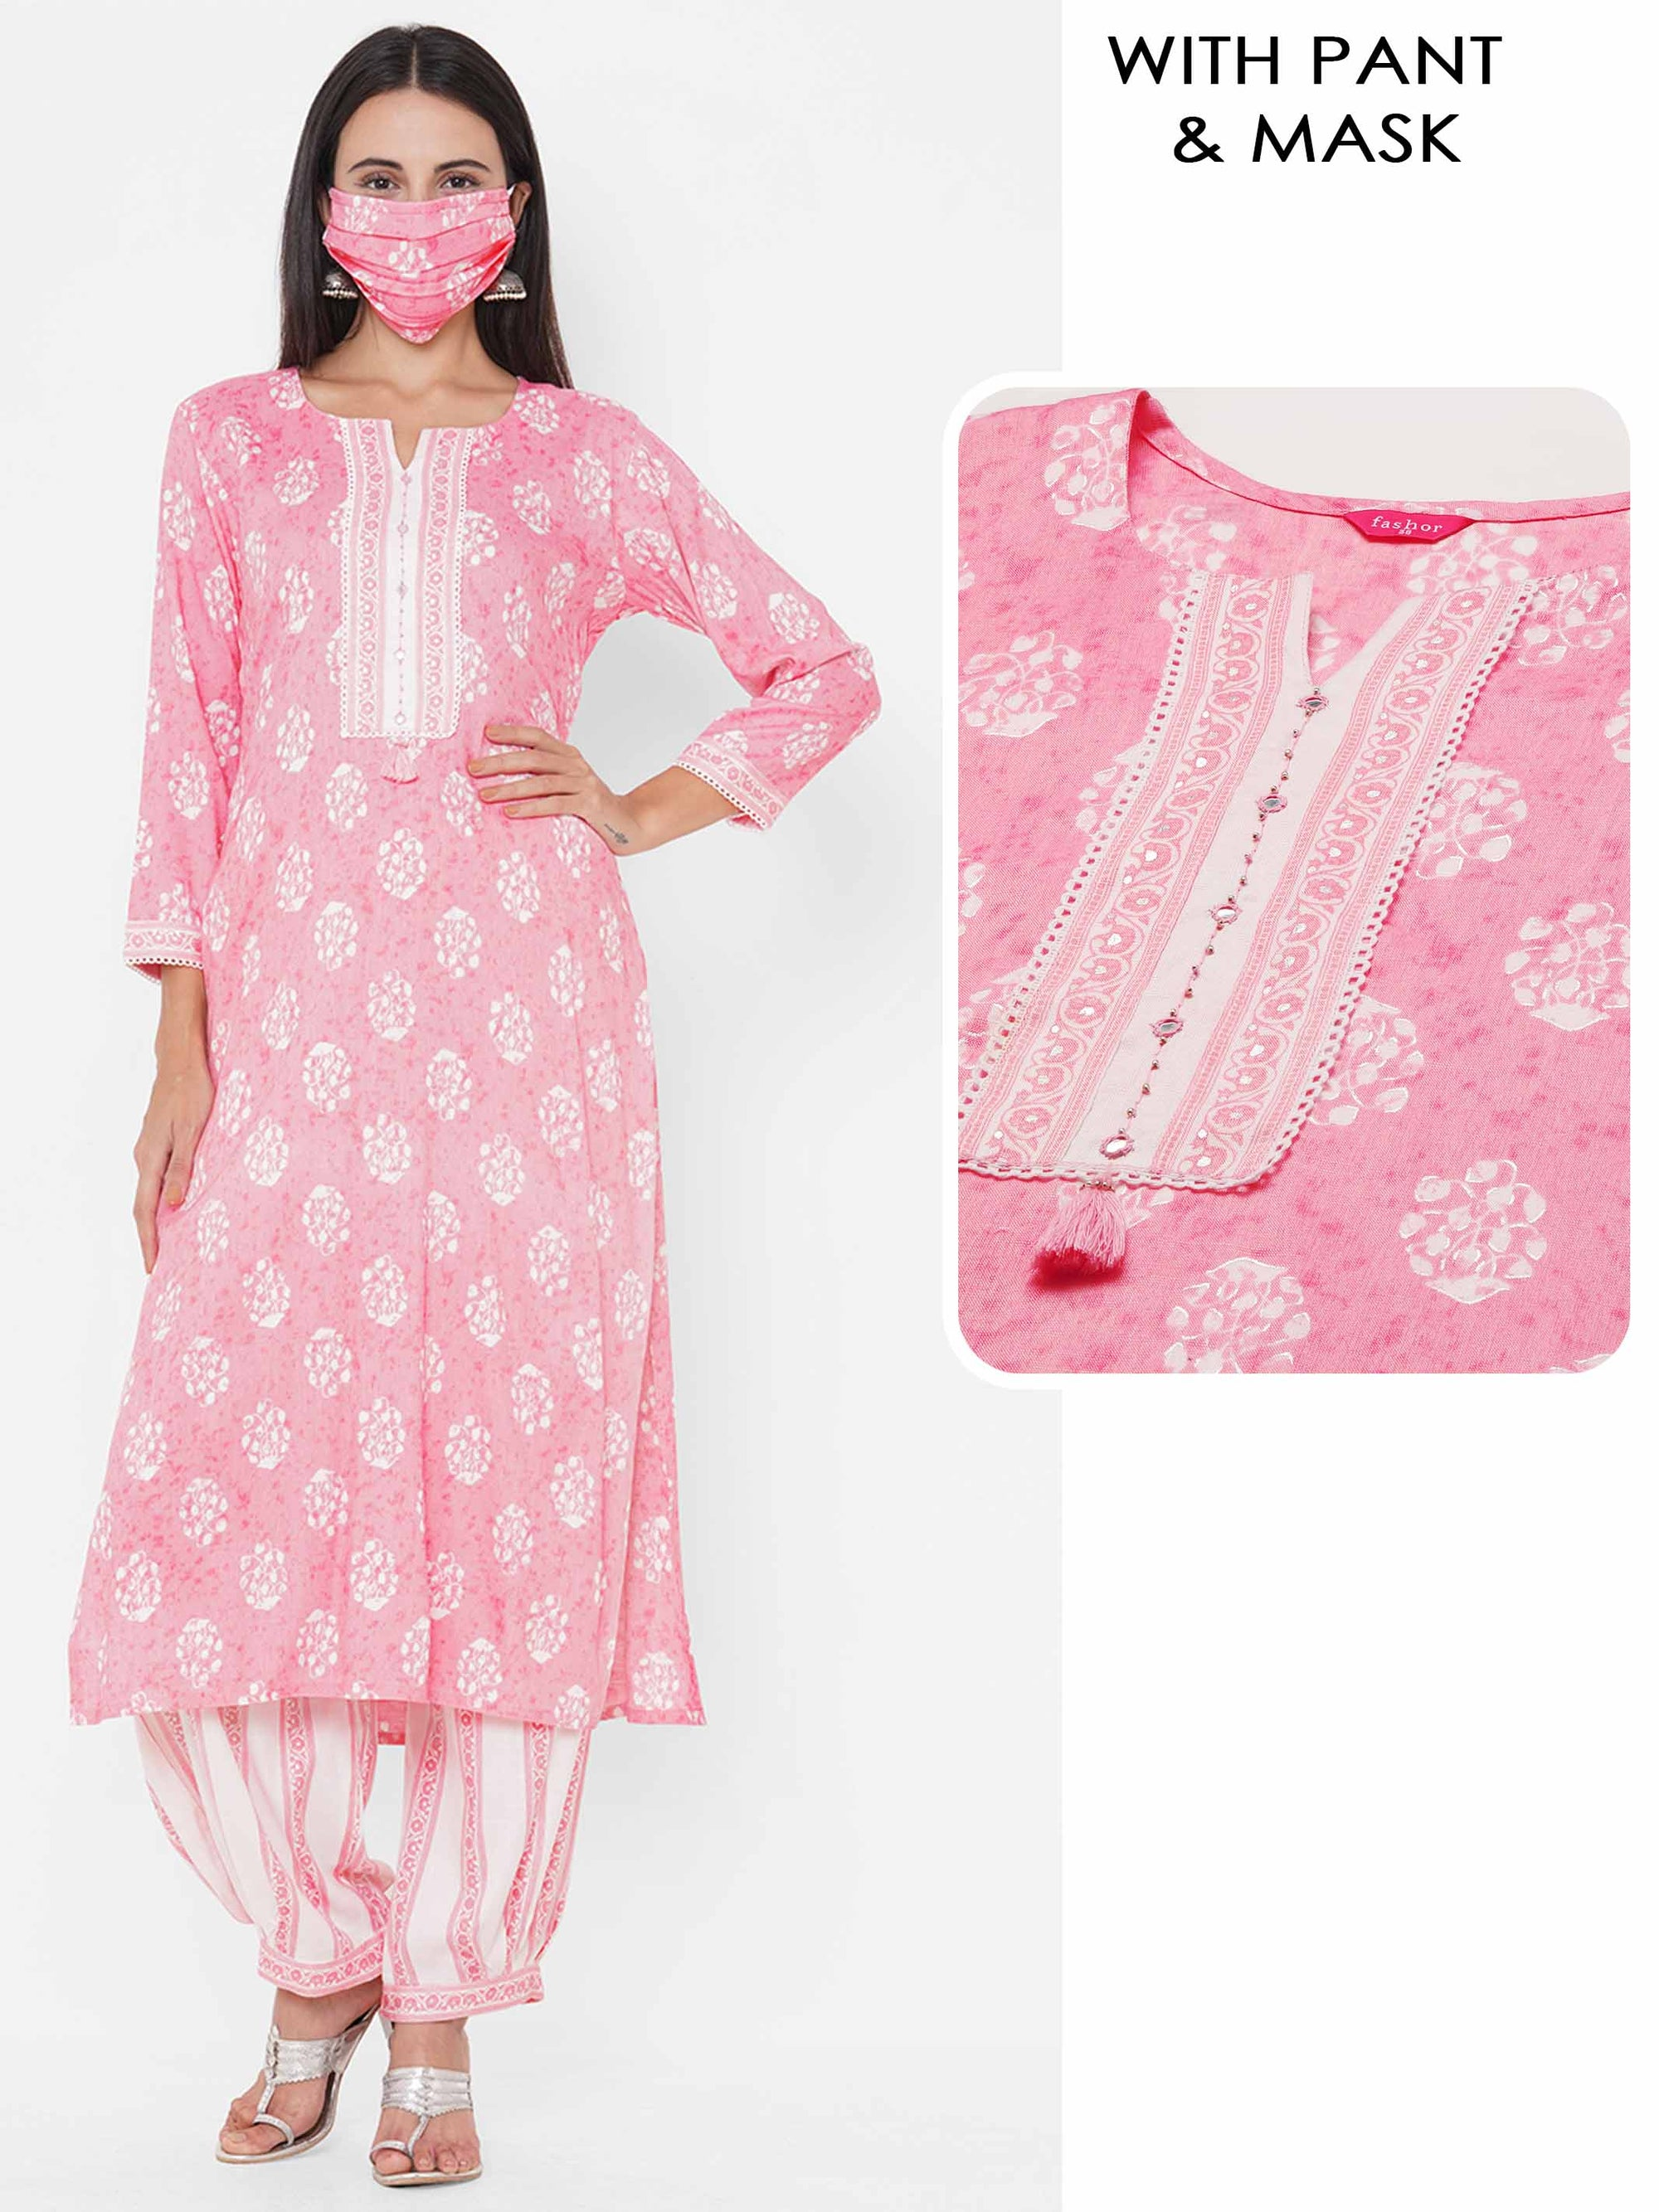 Floral Printed Straight Kurta with Printed Patiala Pant & 2-Ply Mask - Pink